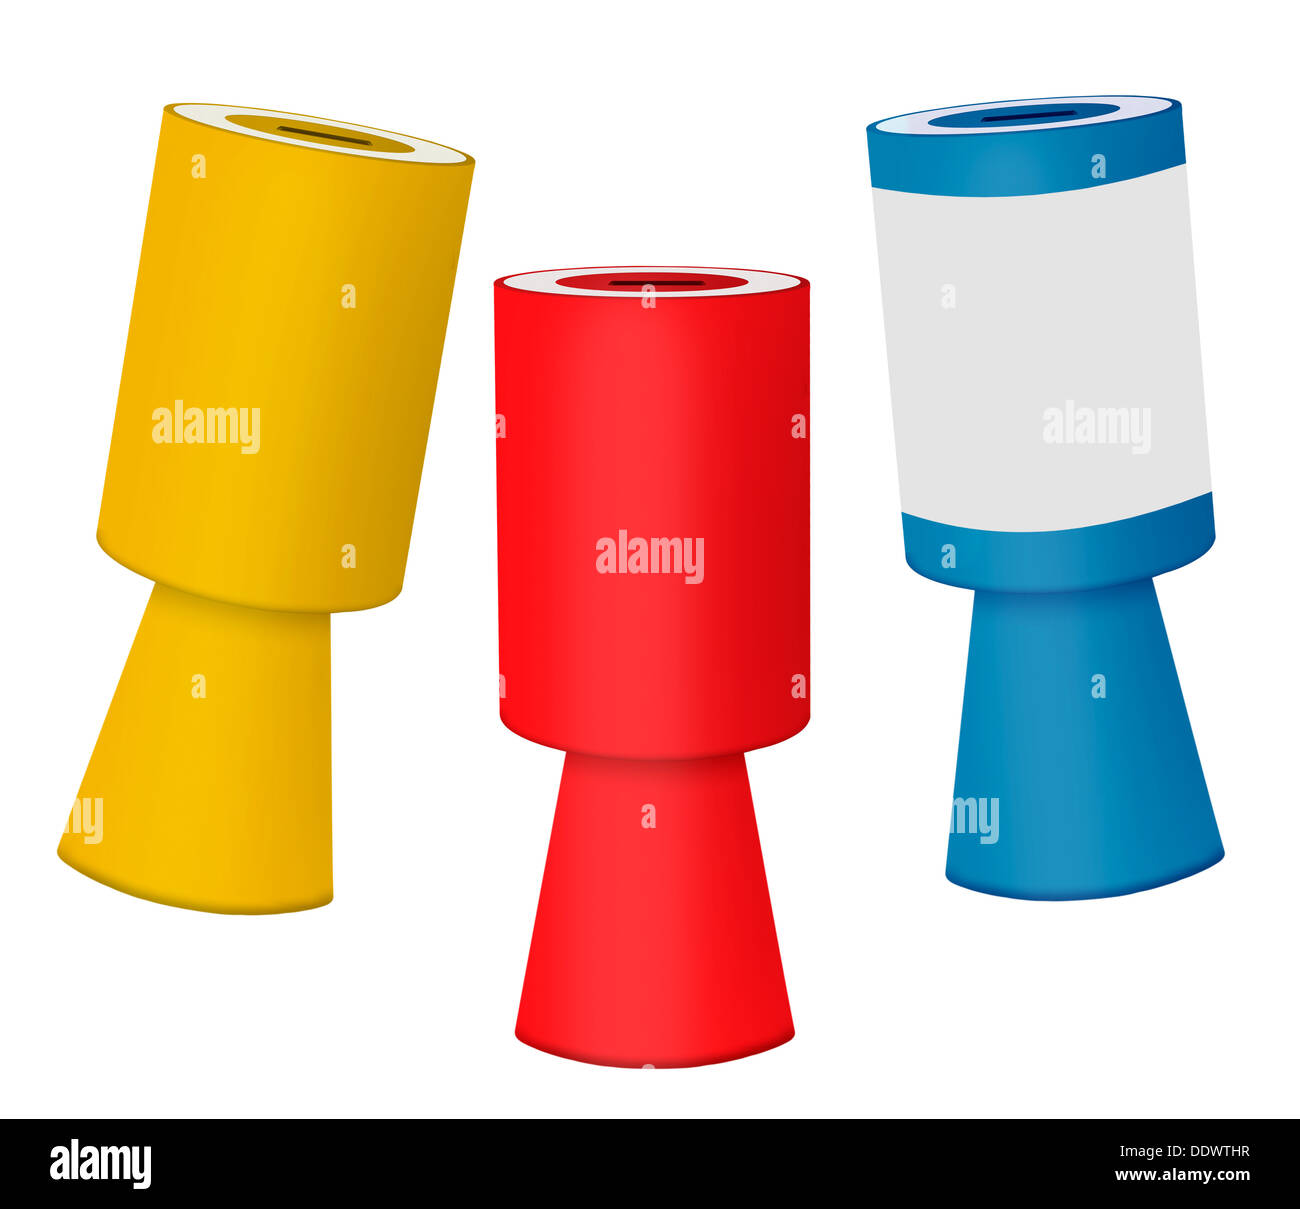 Charity collecting money boxes - Stock Image